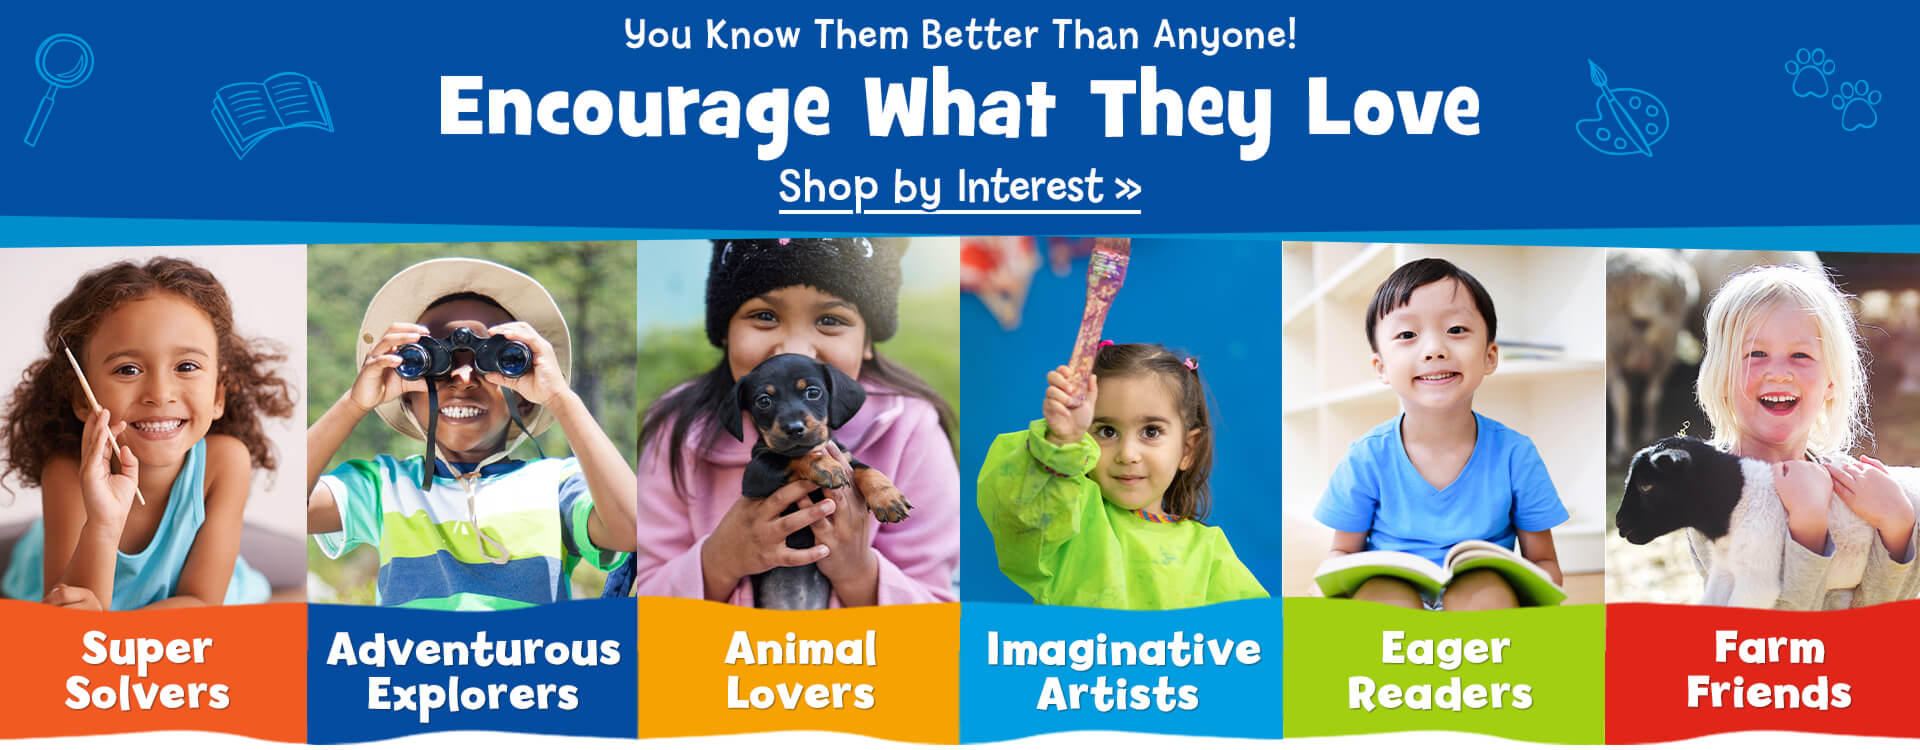 Is your child a Super Solver, an Adventurous Explorer or an Animal Lover? Are they an Imaginative Artist, an Eager Reader or a Farm Friend? Shop by interest and you'll always find items to inspire and encourage their passions.